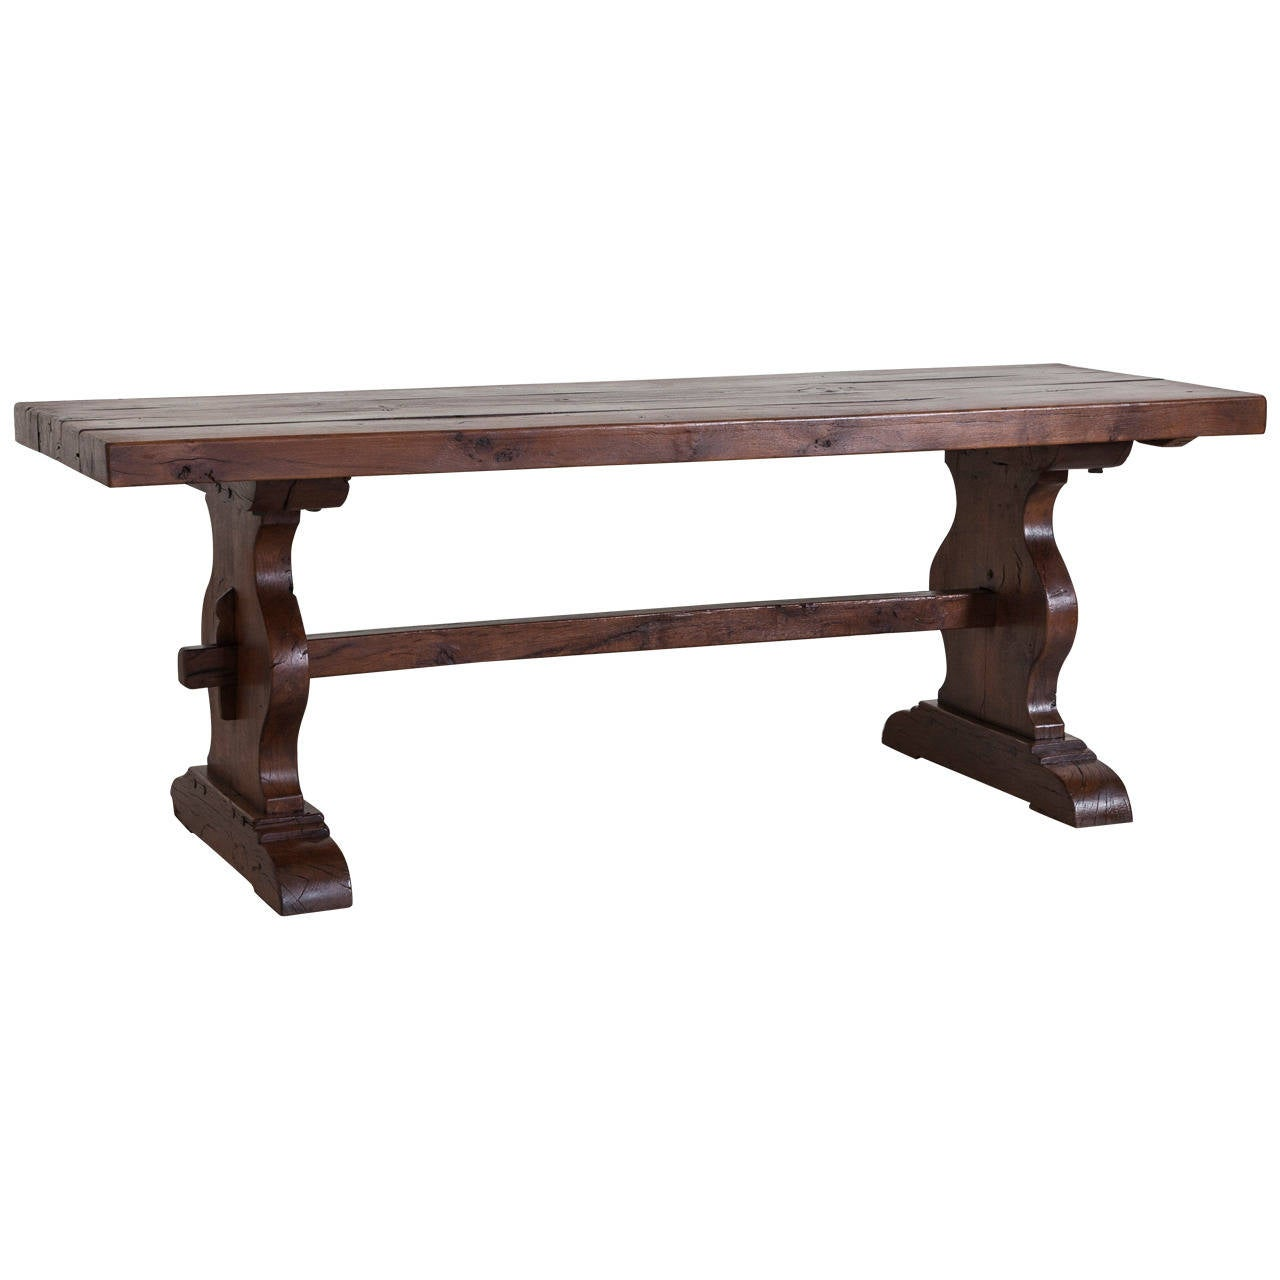 Antique french oak farm table in the monastery trestle style from normandy at 1stdibs - Antique french dining tables ...